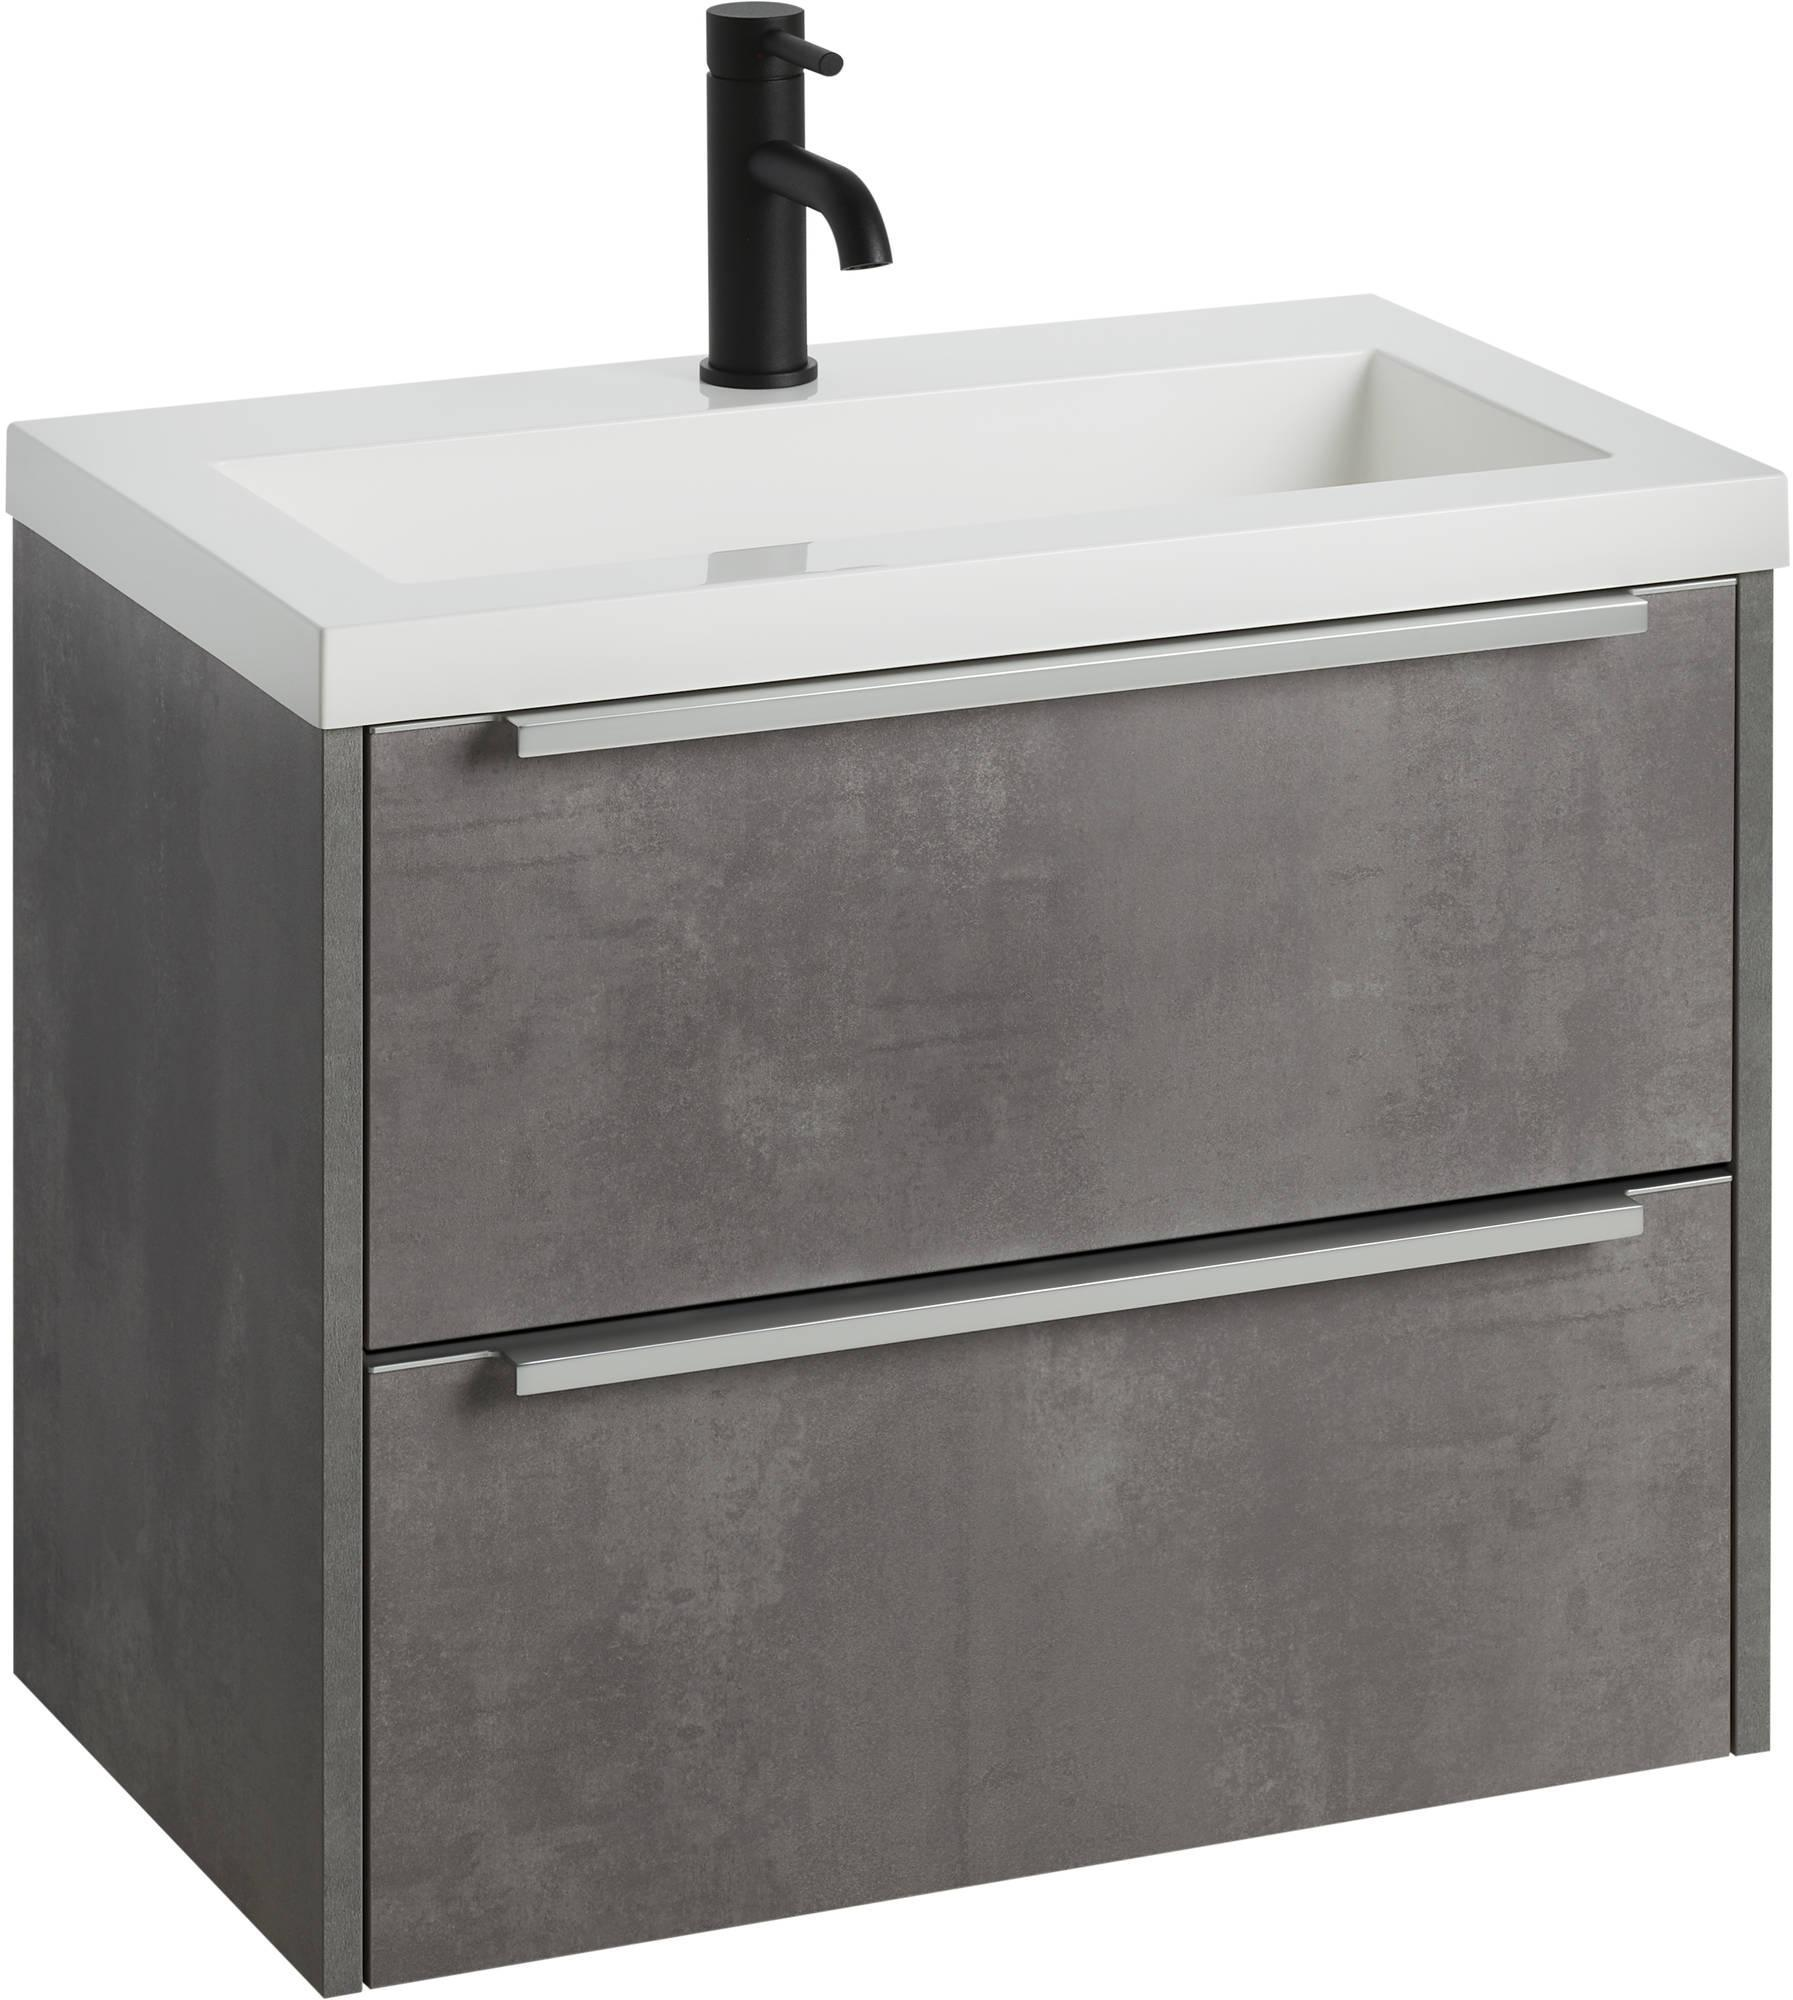 2 Drawers 60cm Concrete Gray Bathroom